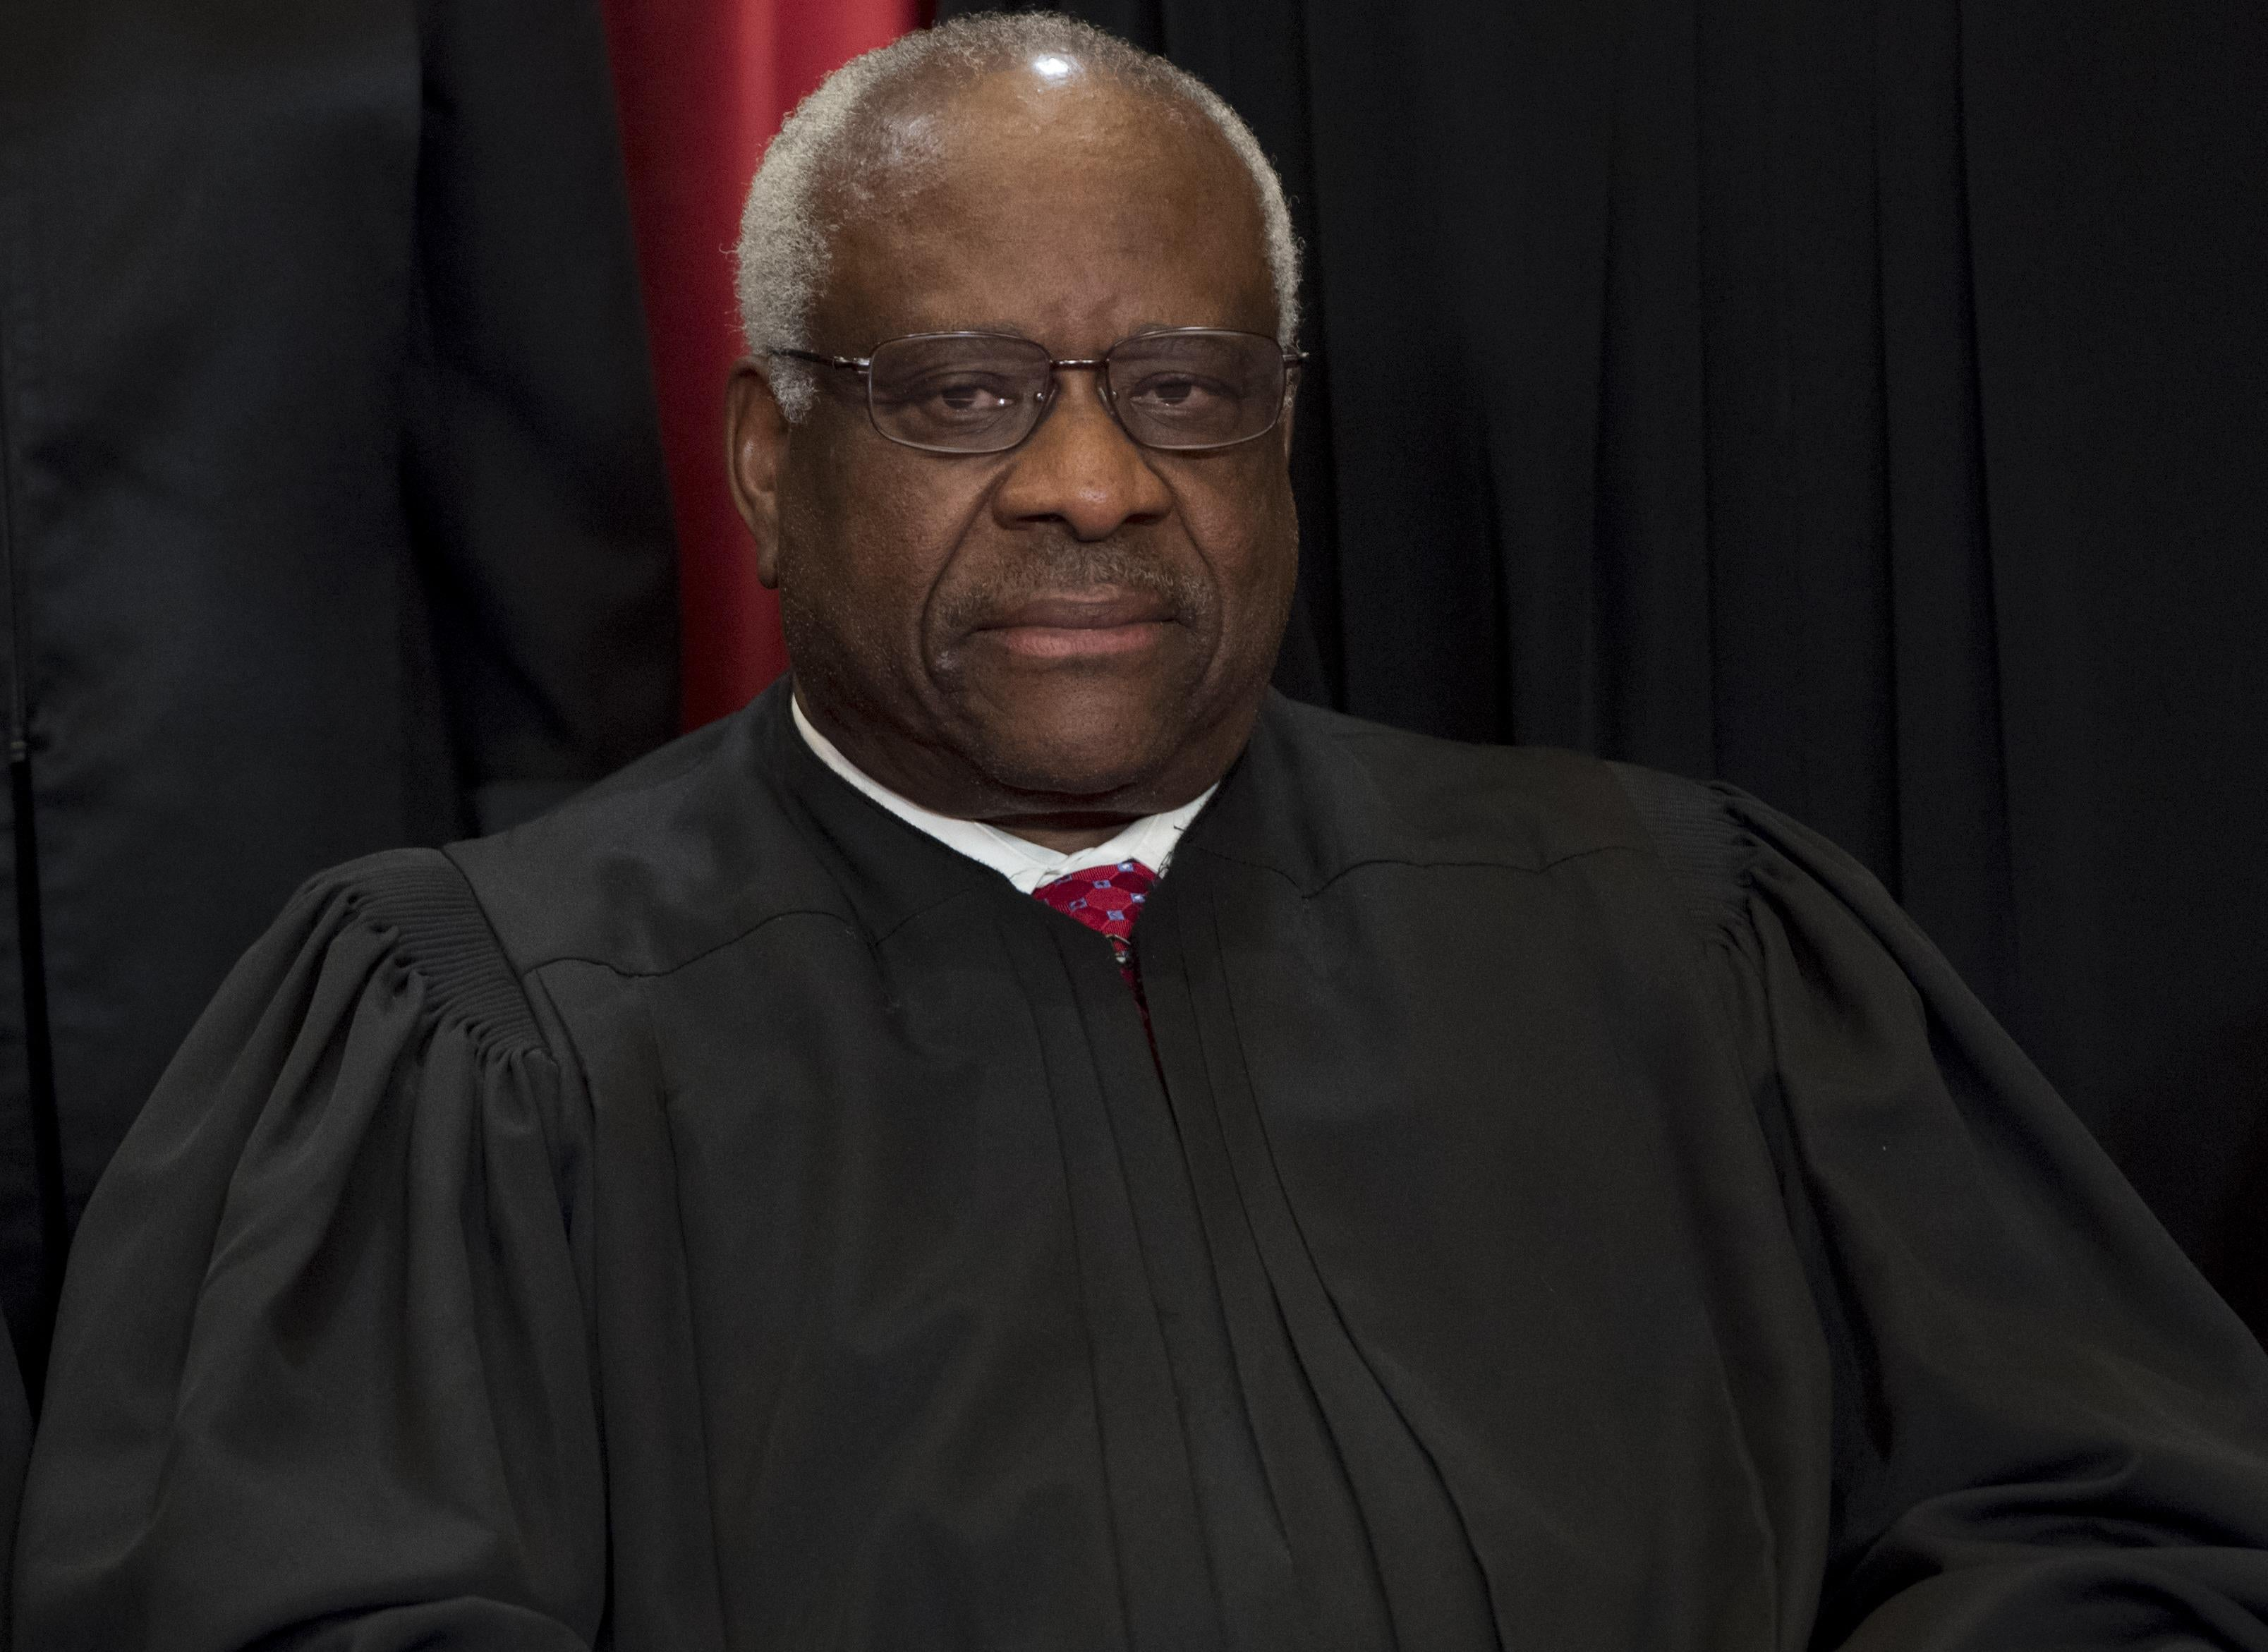 Clarence Thomas in a black robe.